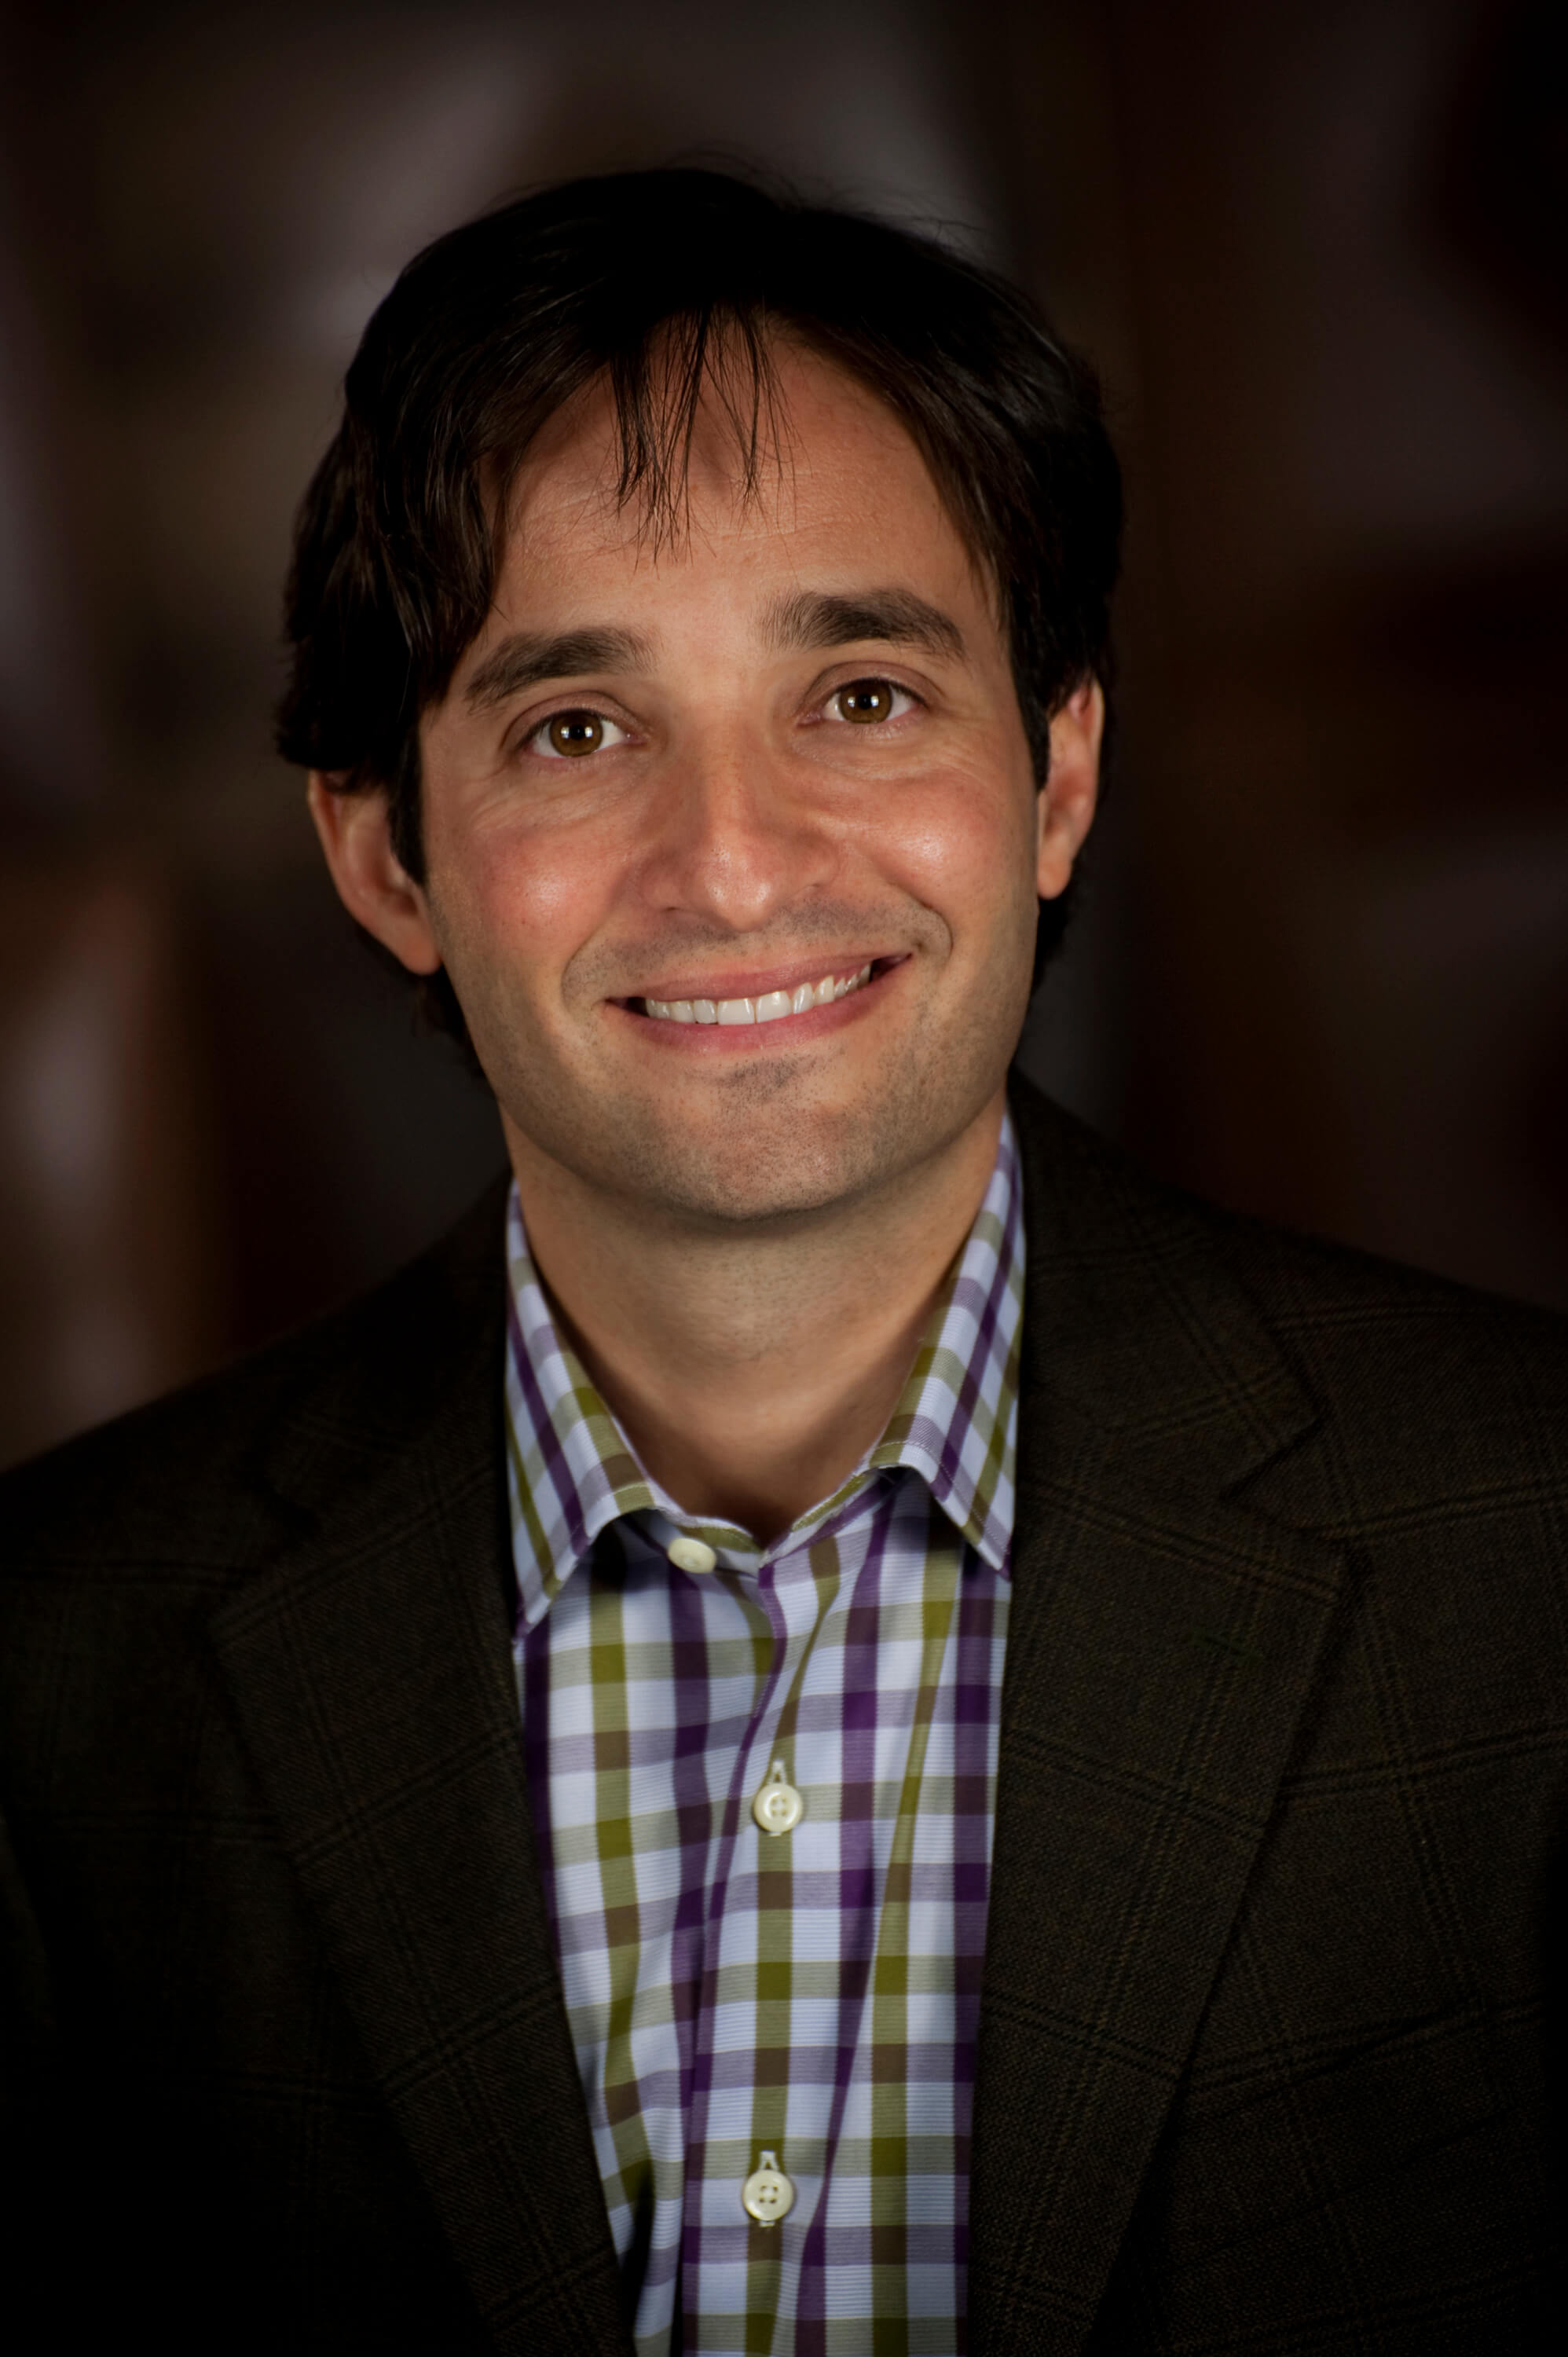 Josh Linkner, Executive Speakers Bureau